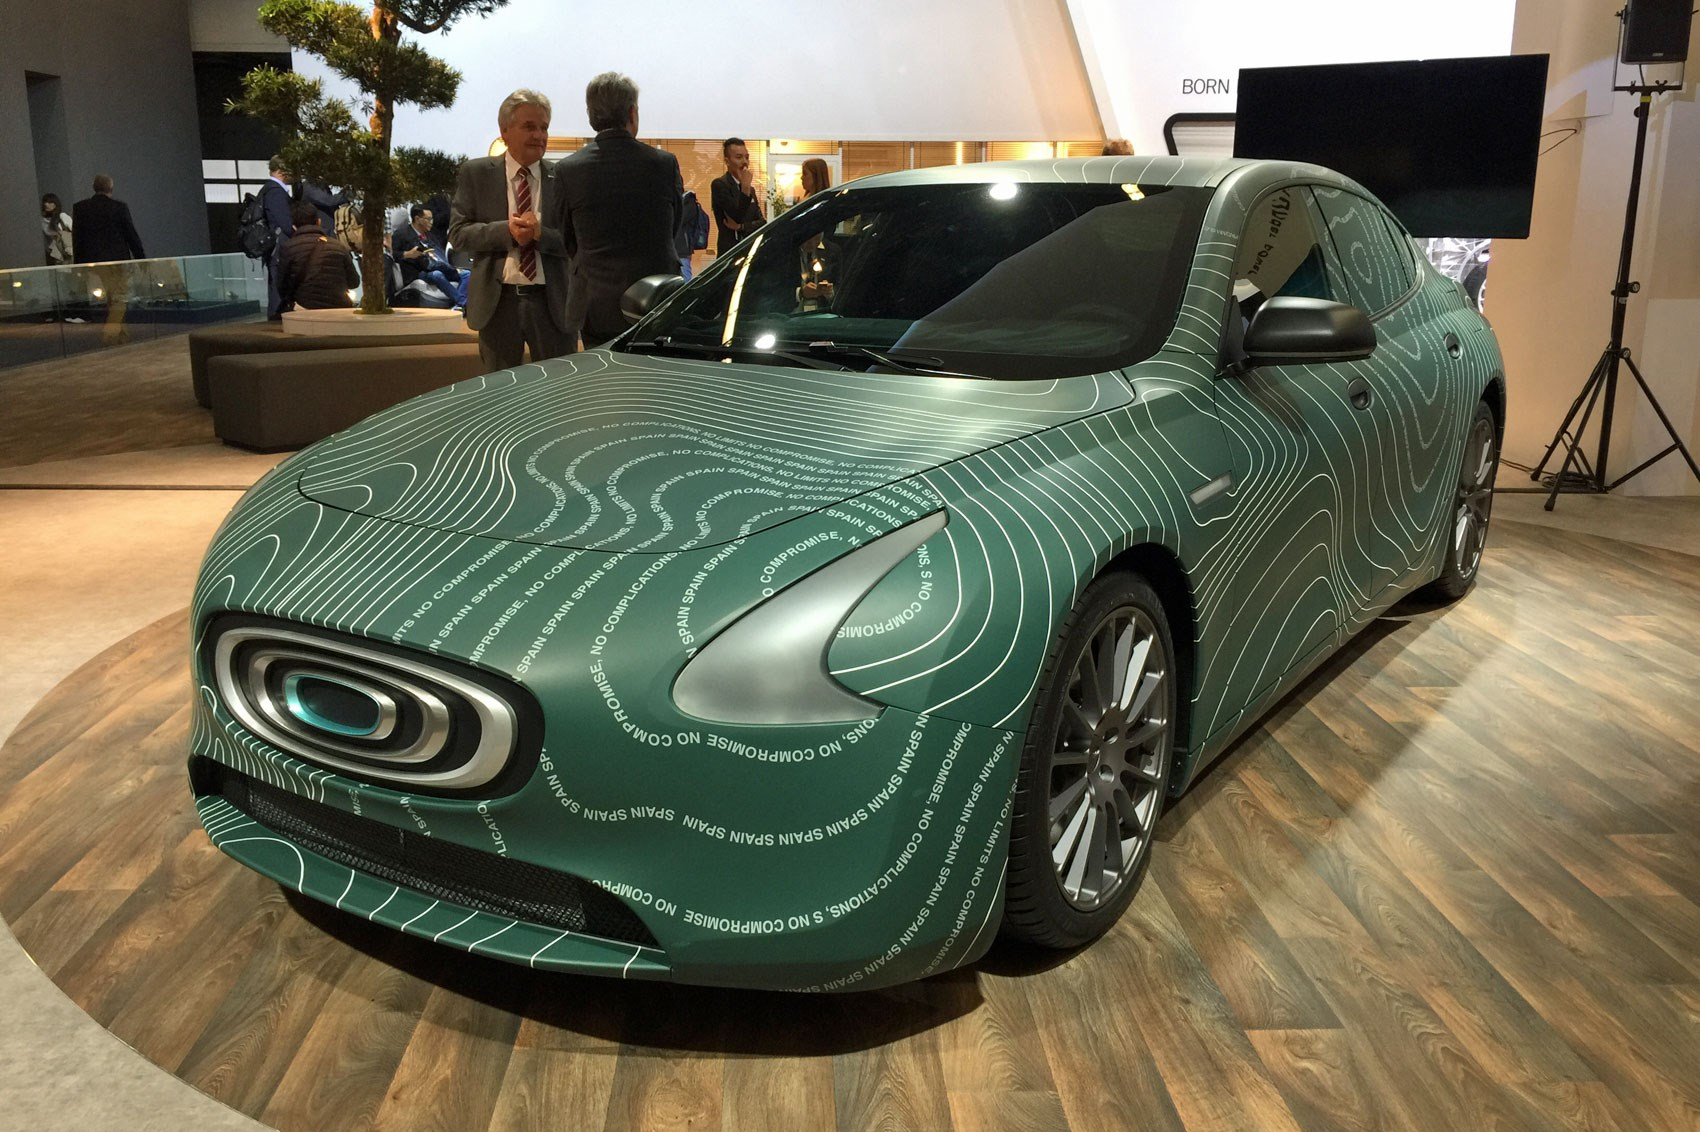 Thunder Power electric cars at the 2017 Frankfurt motor show